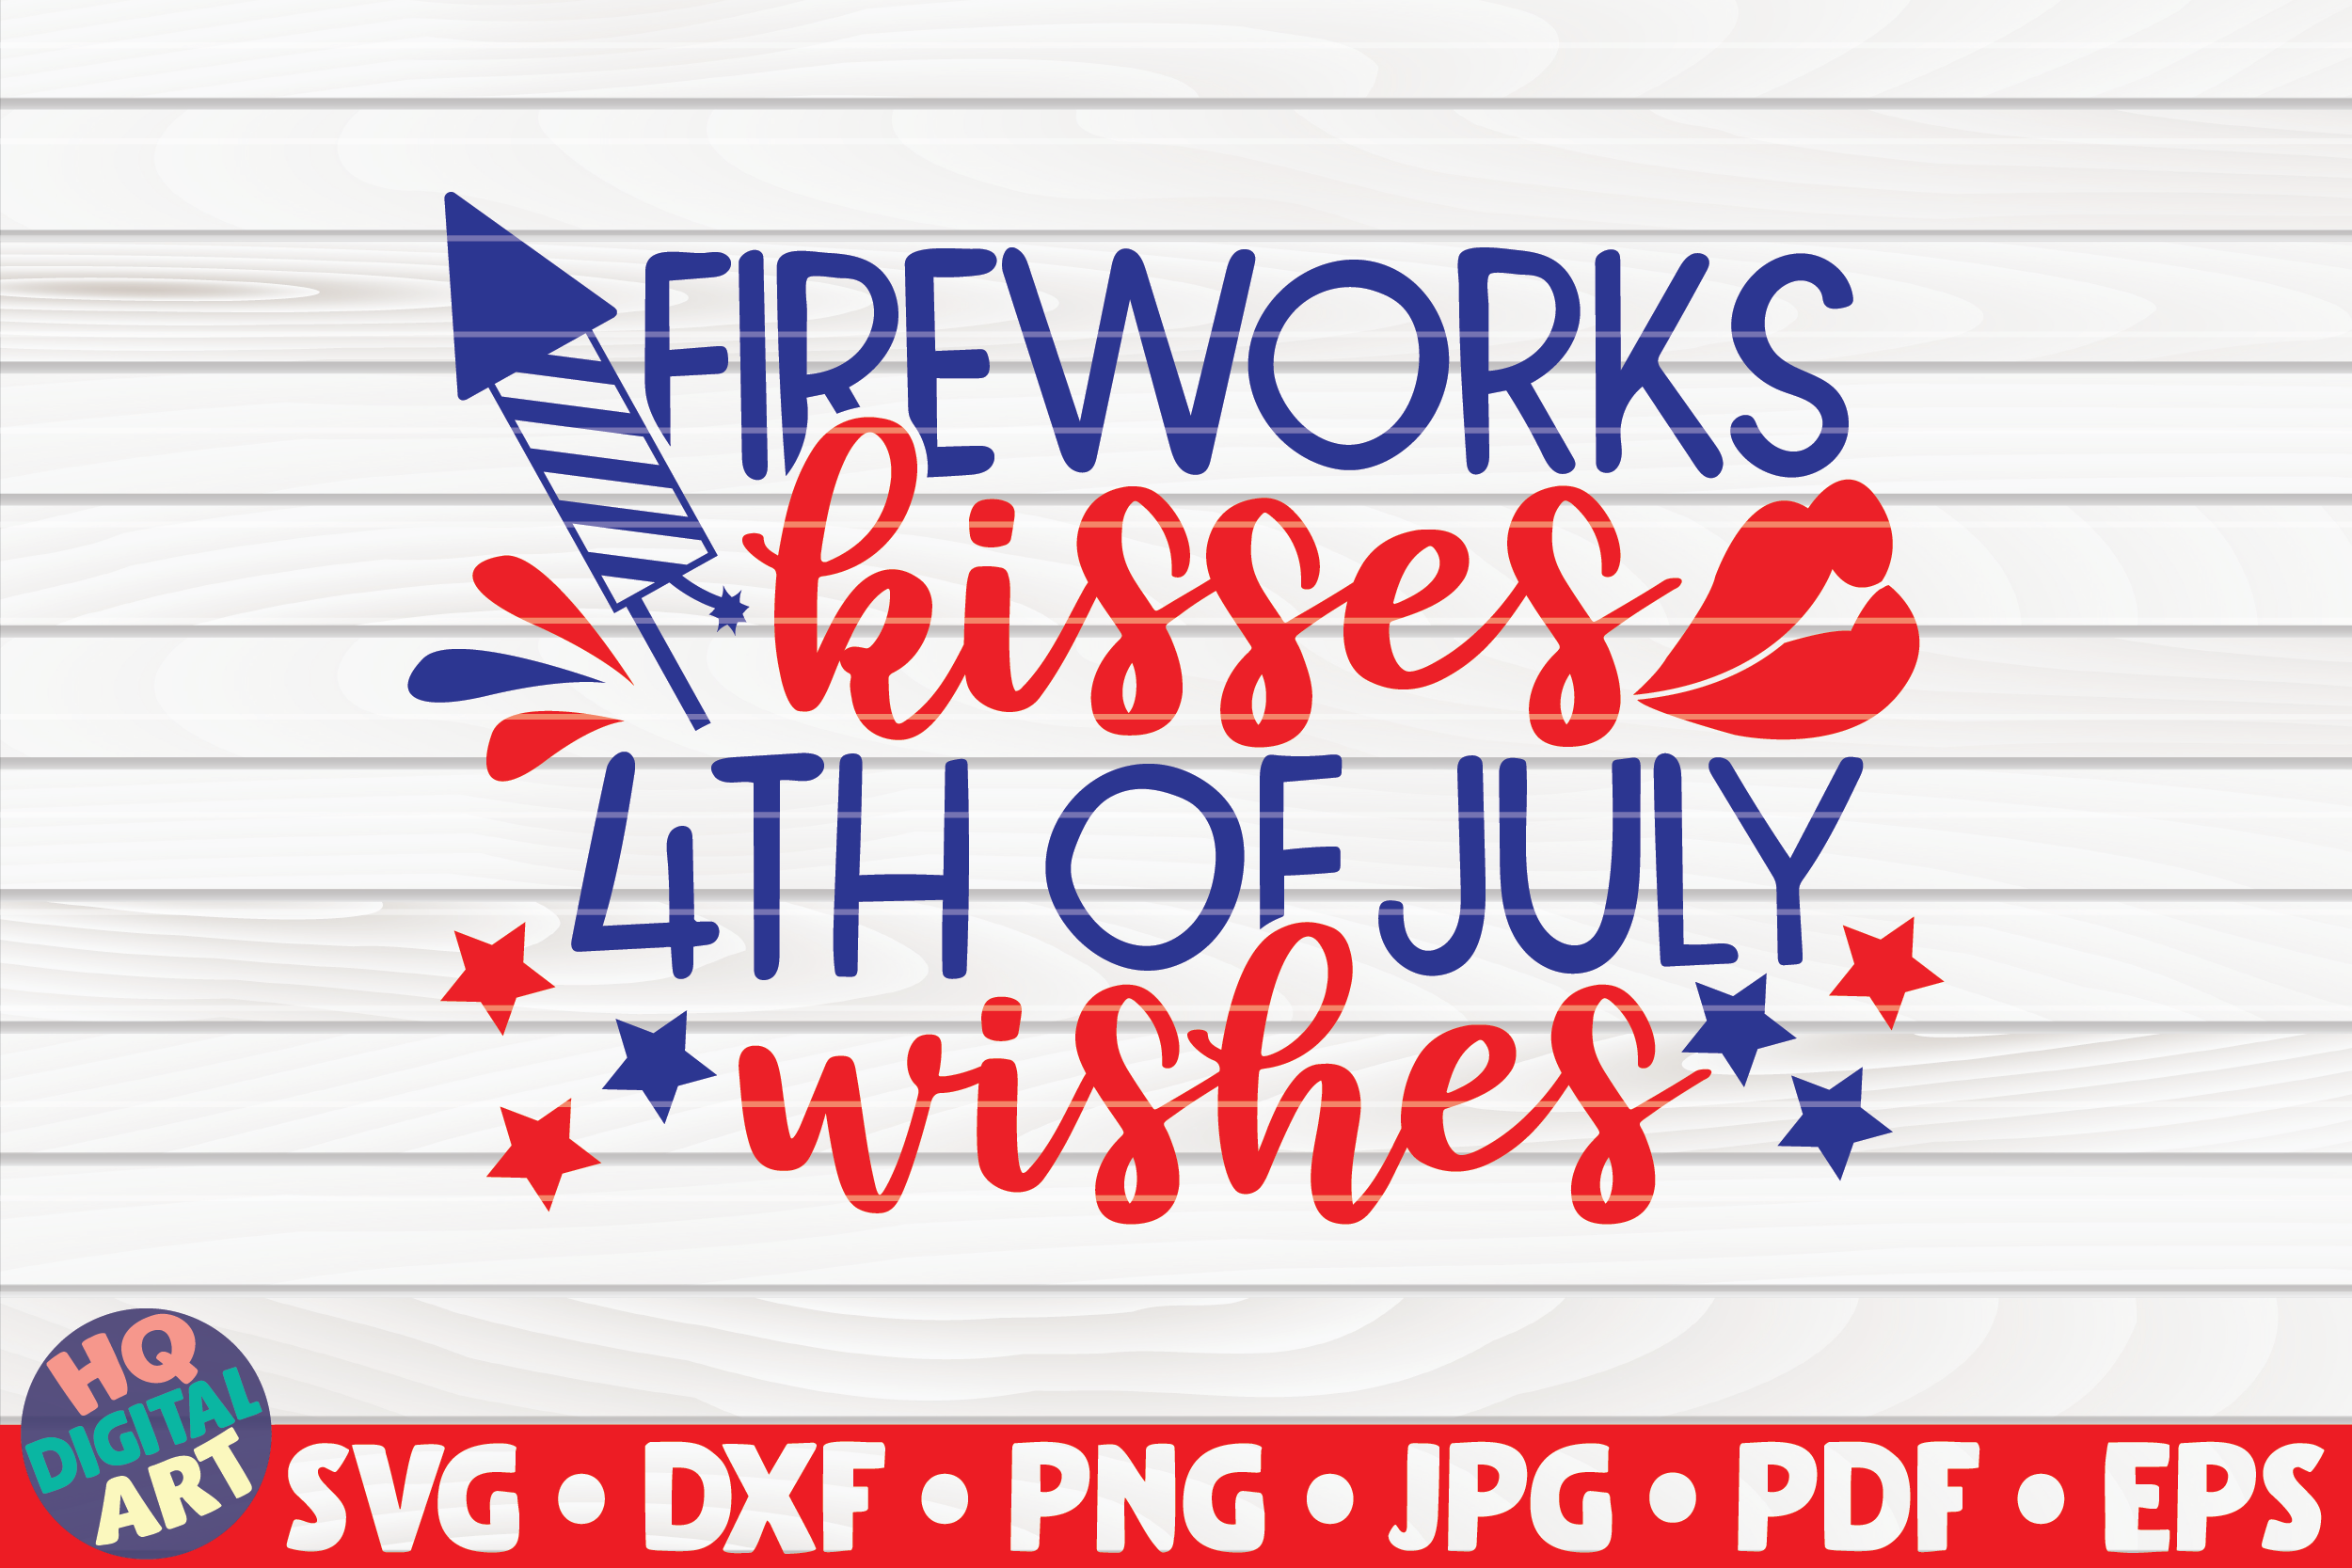 Download Free Fireworks Kisses 4th Of July Wishes Graphic By Mihaibadea95 for Cricut Explore, Silhouette and other cutting machines.